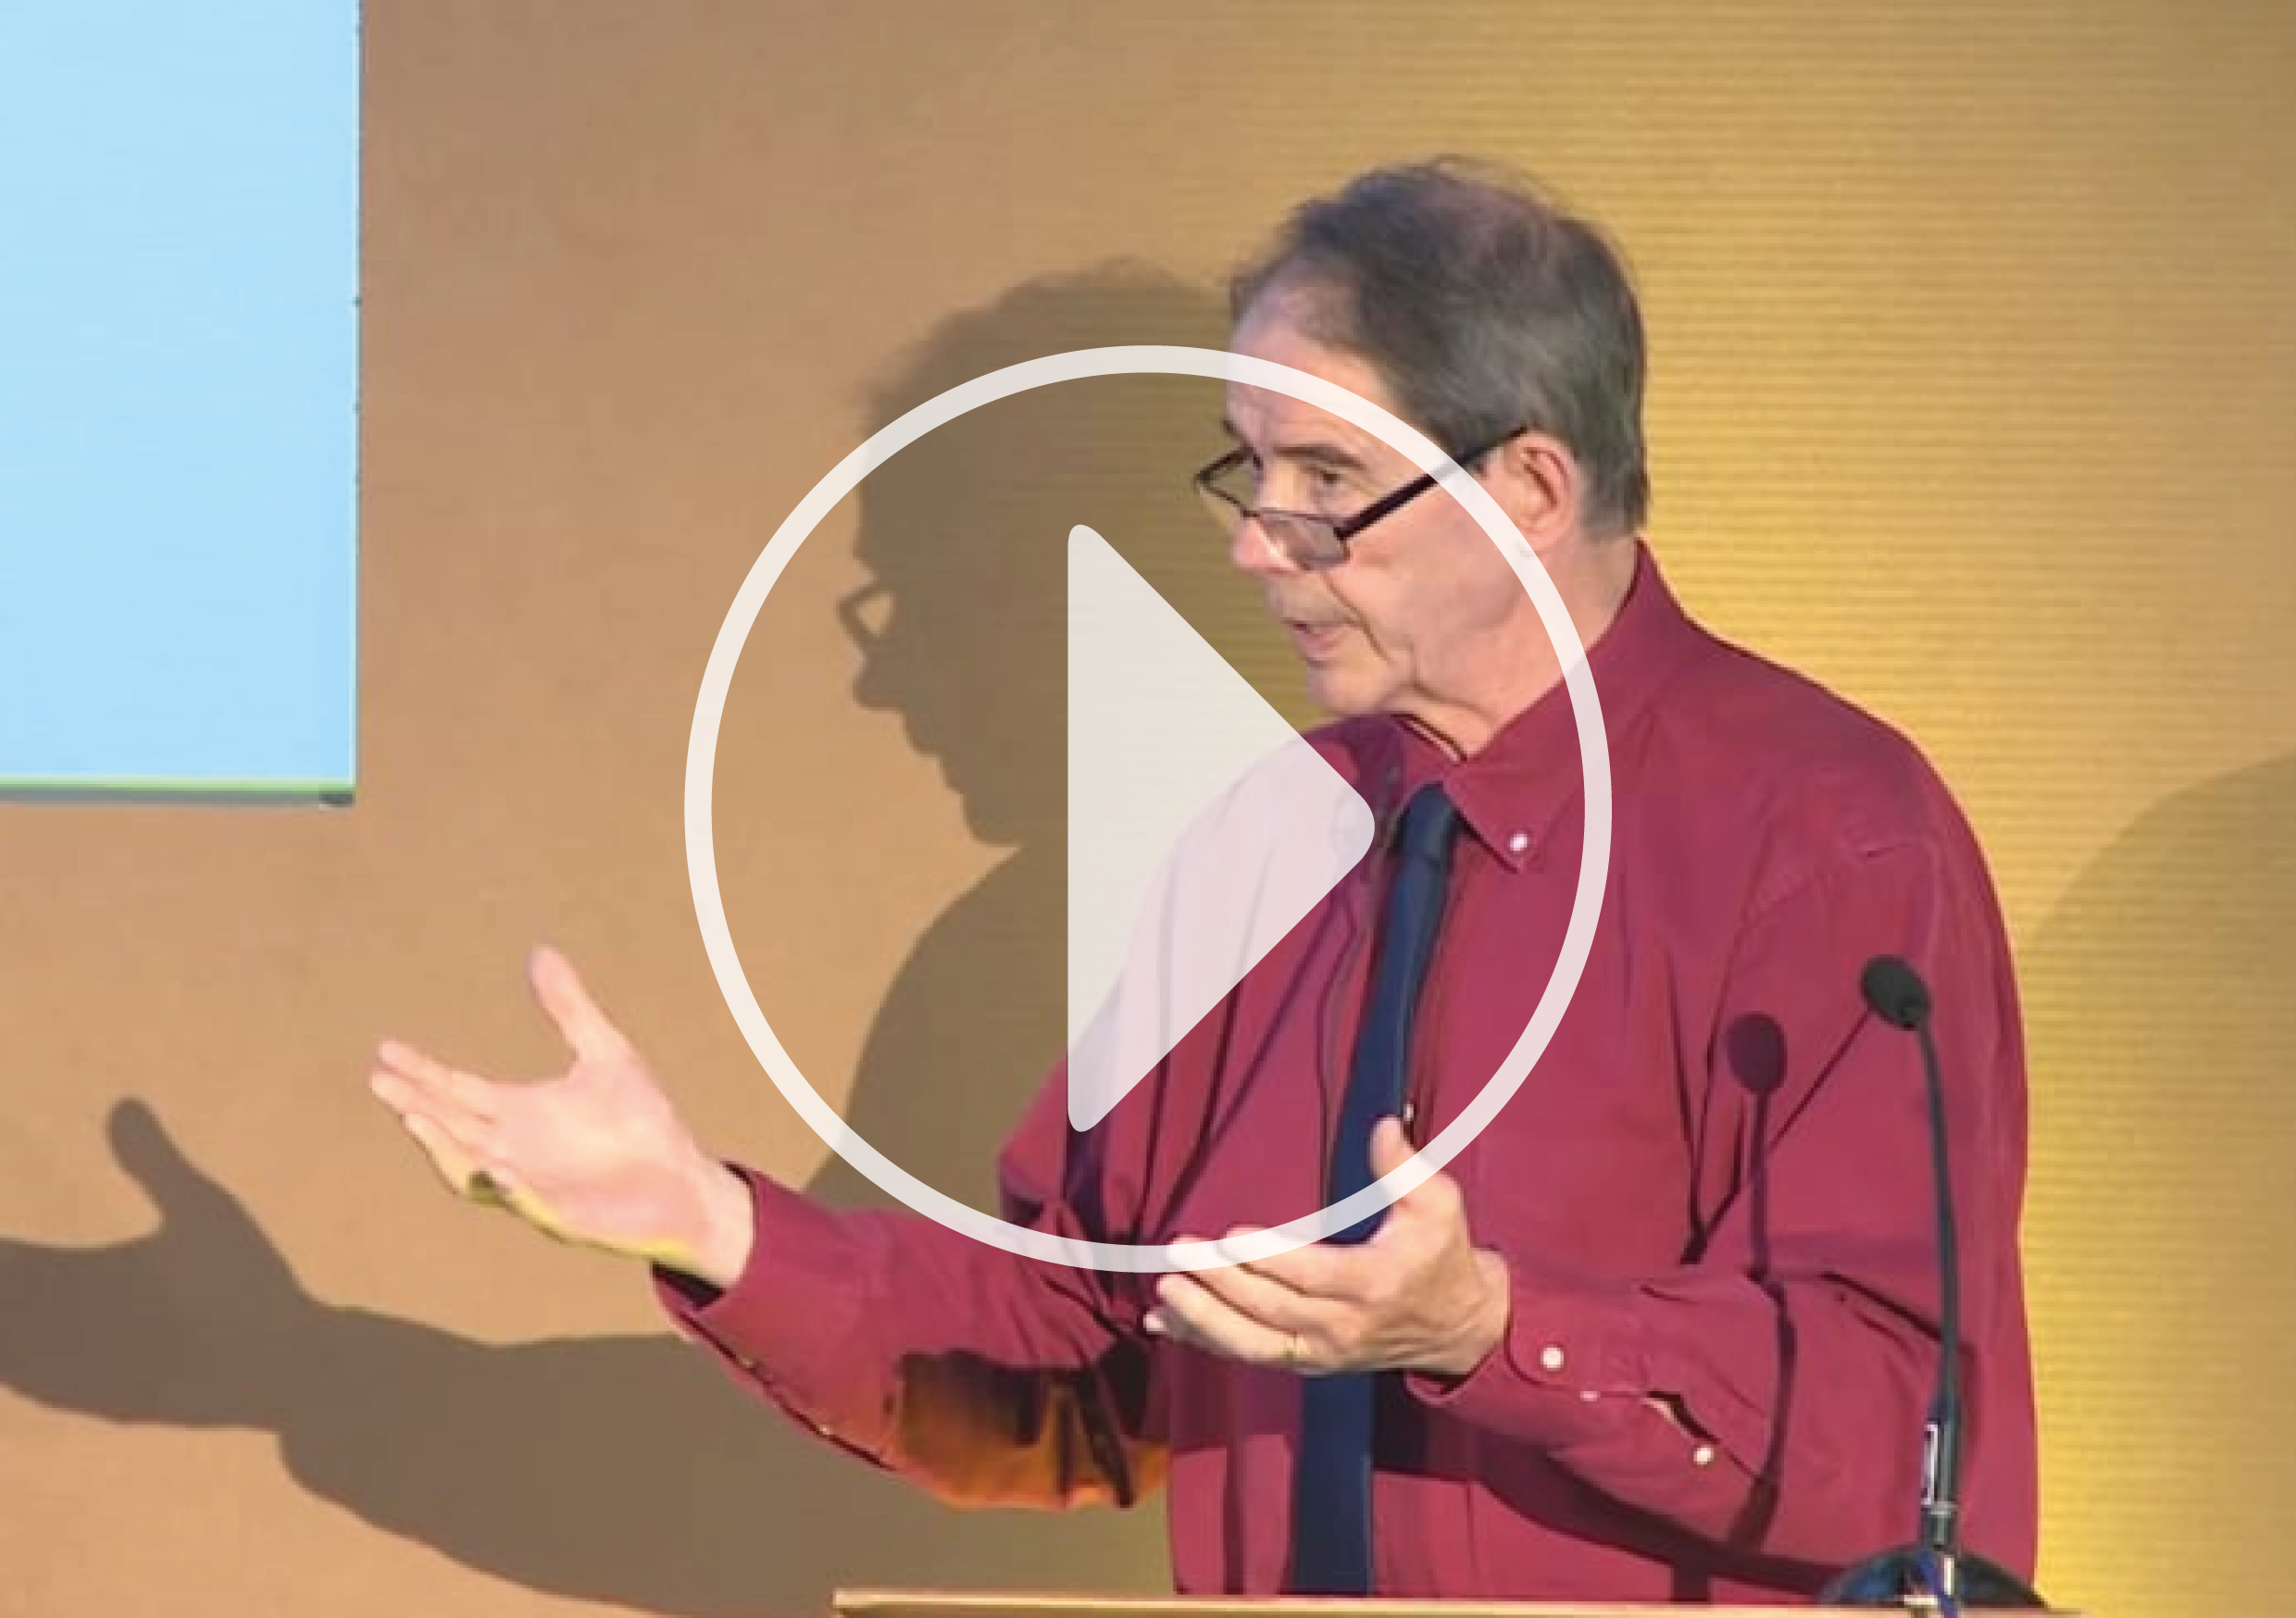 video still - Jonathon Porritt.png